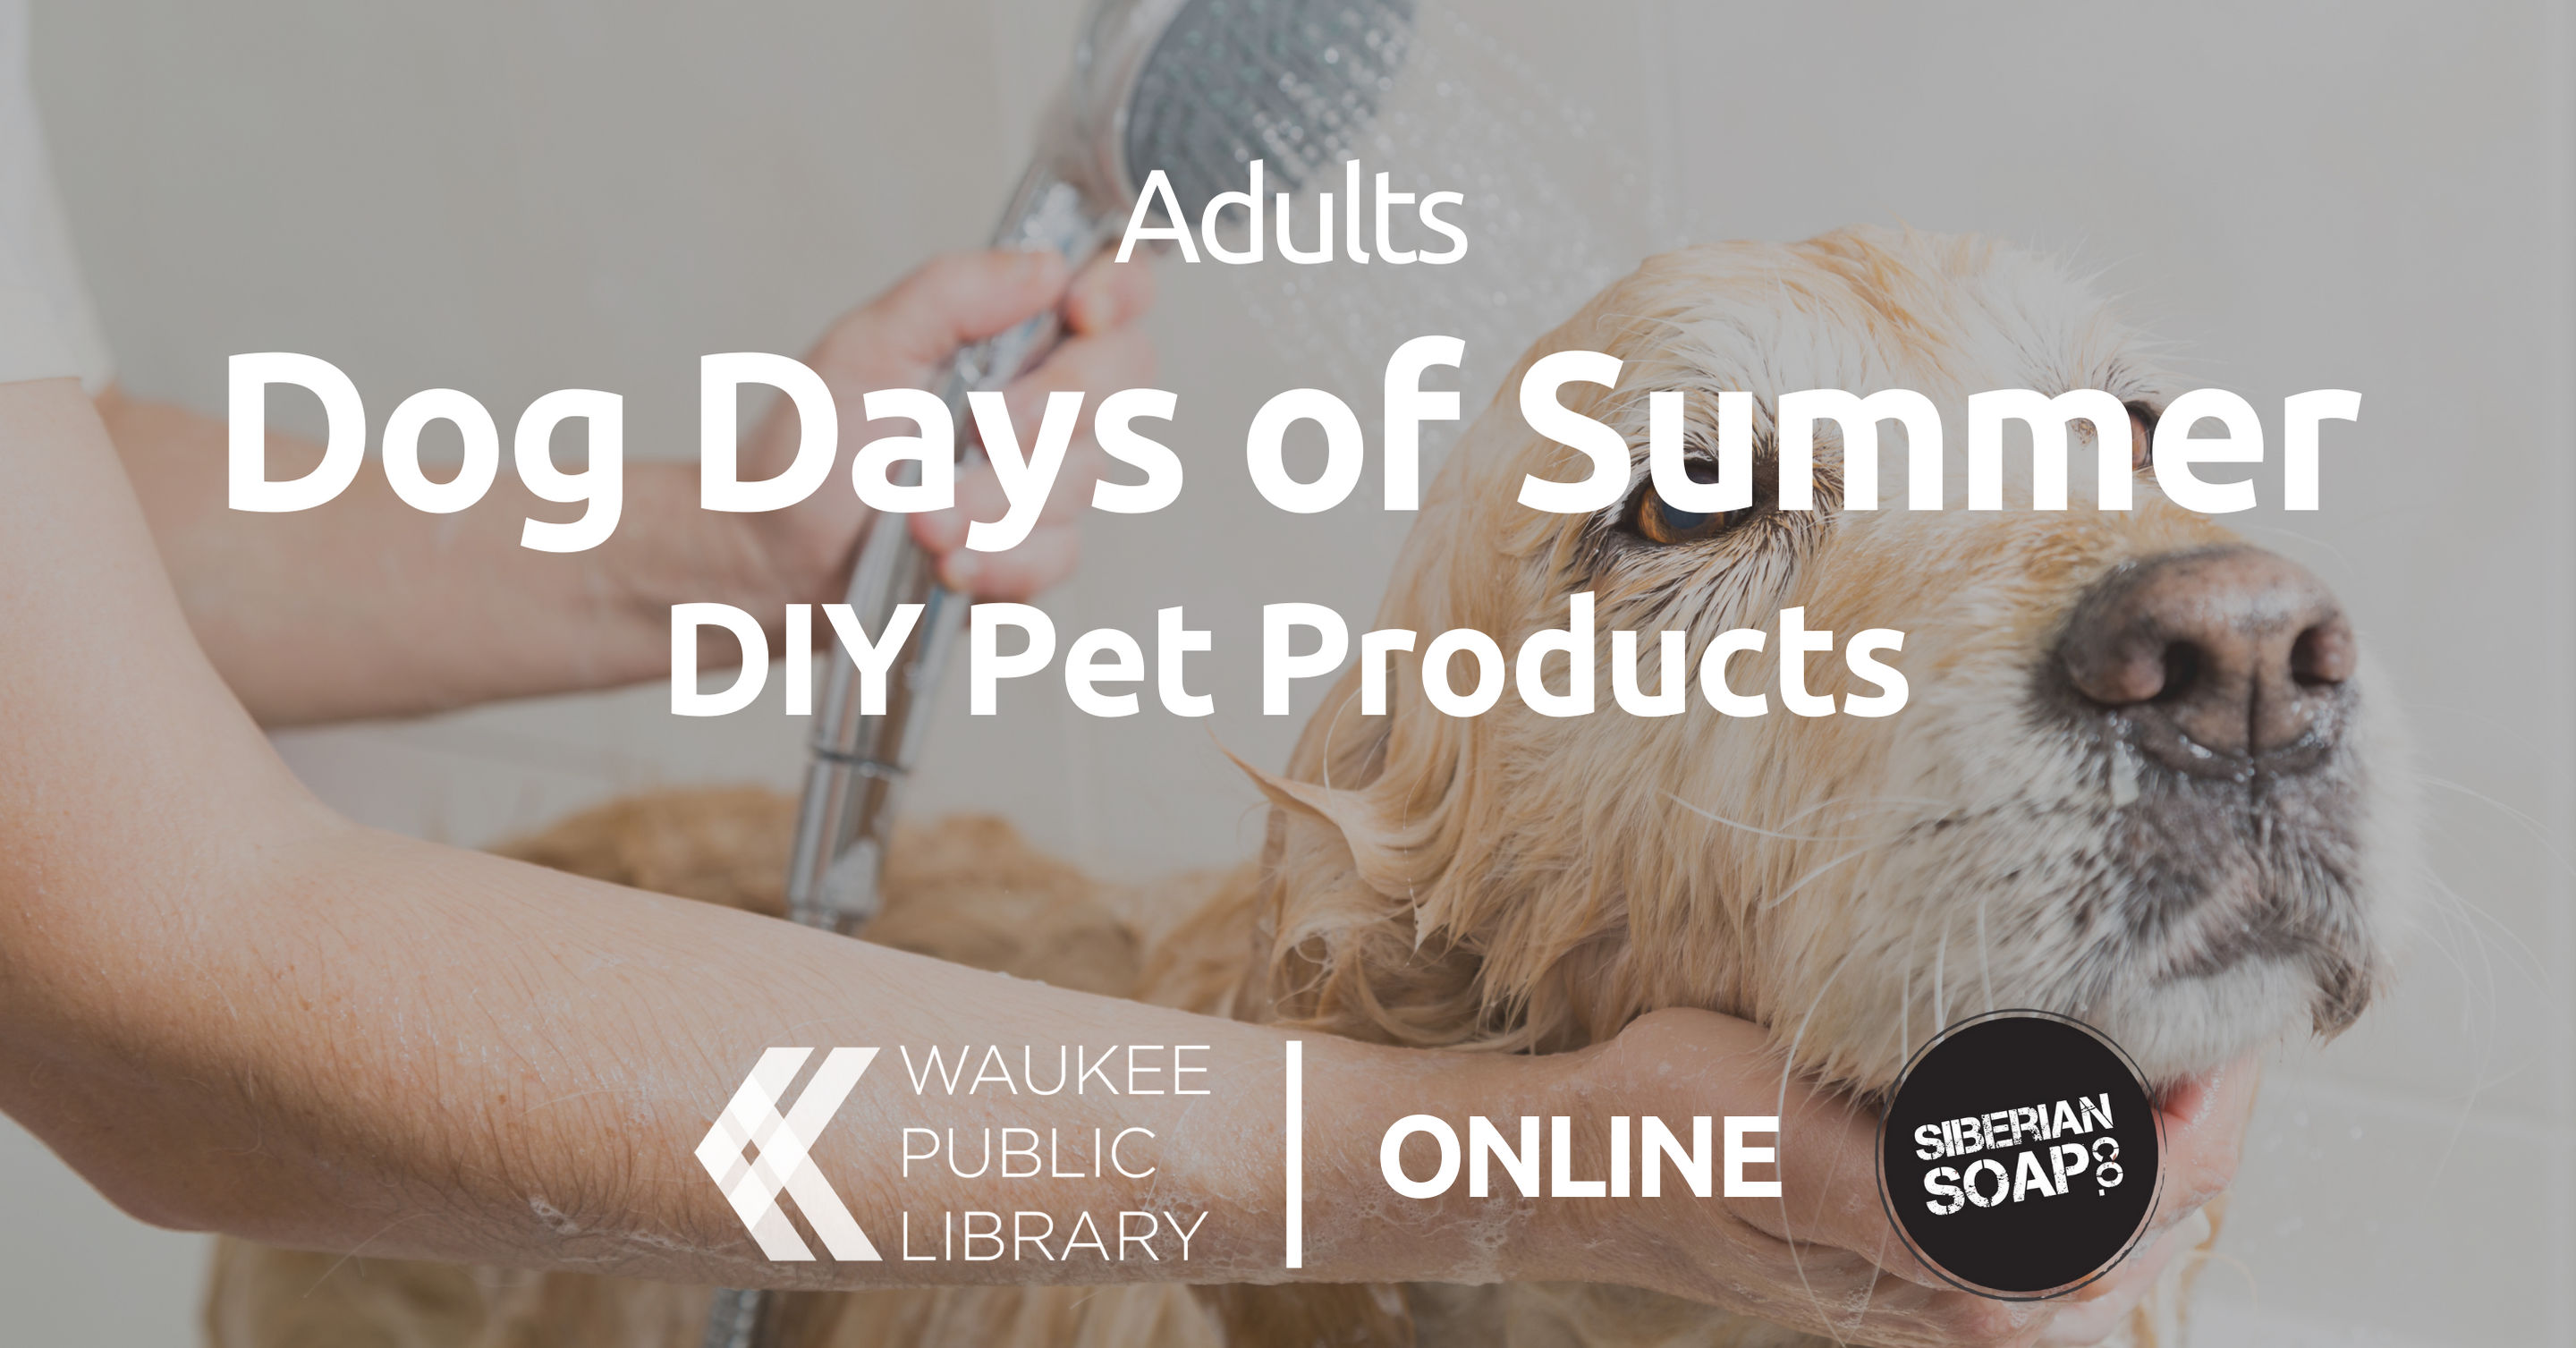 Dog Days of Summer: DIY Pet Products